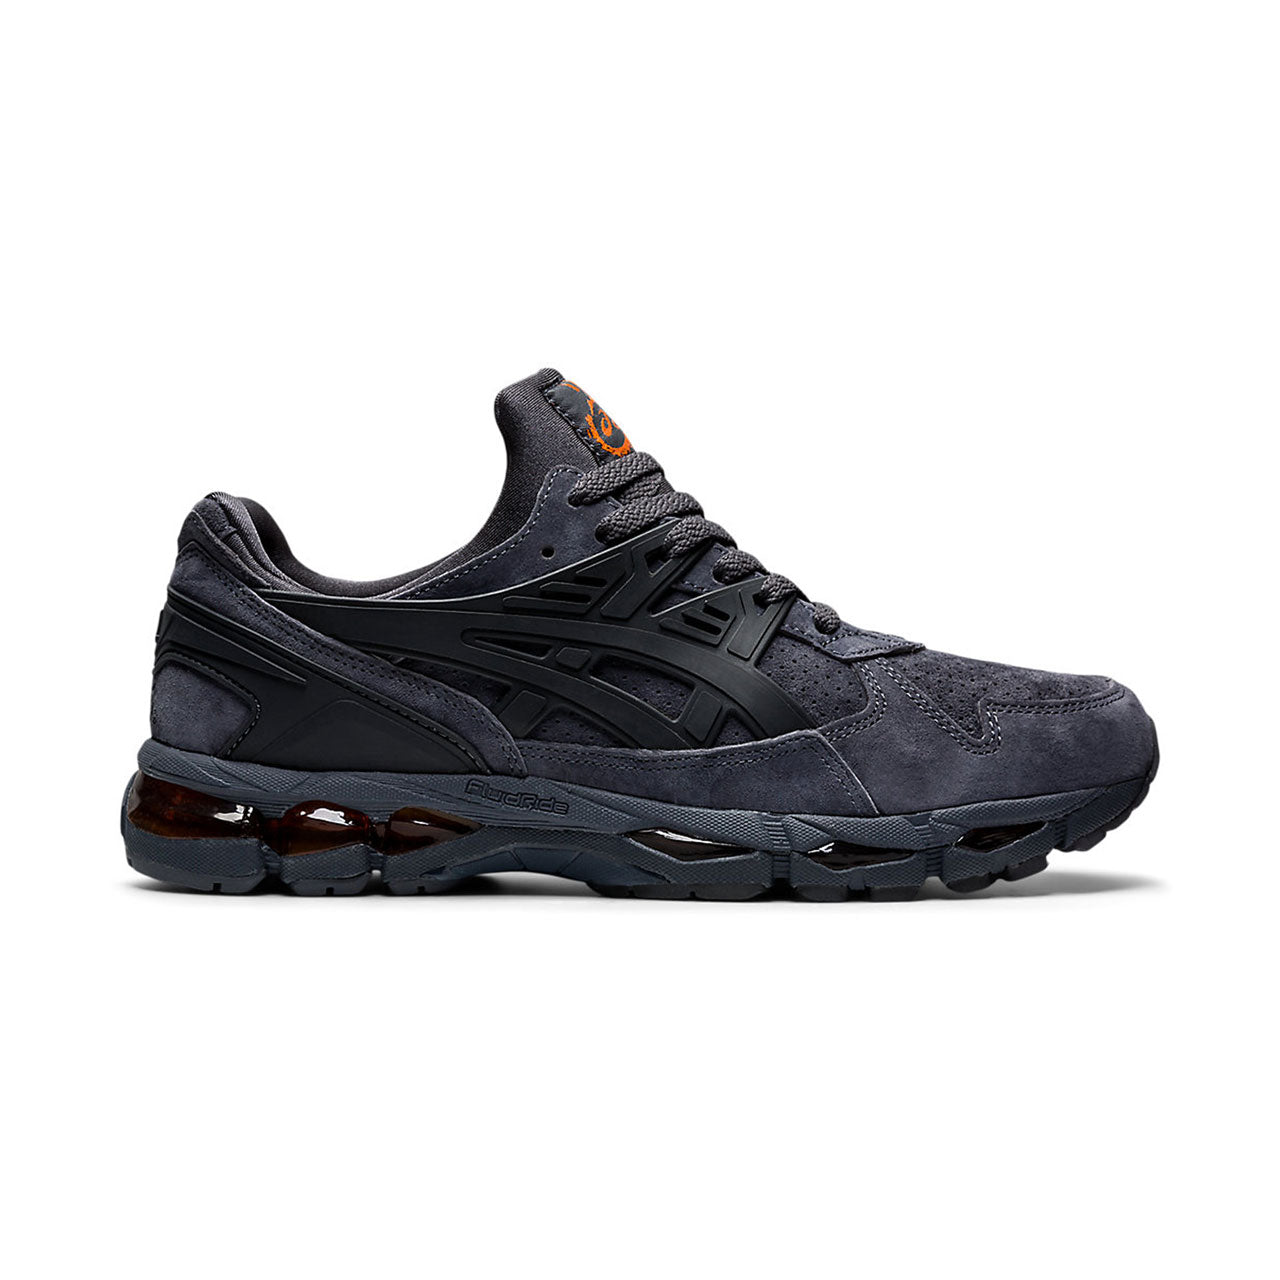 Asics Gel-Kayano Carrier Grey Trainers